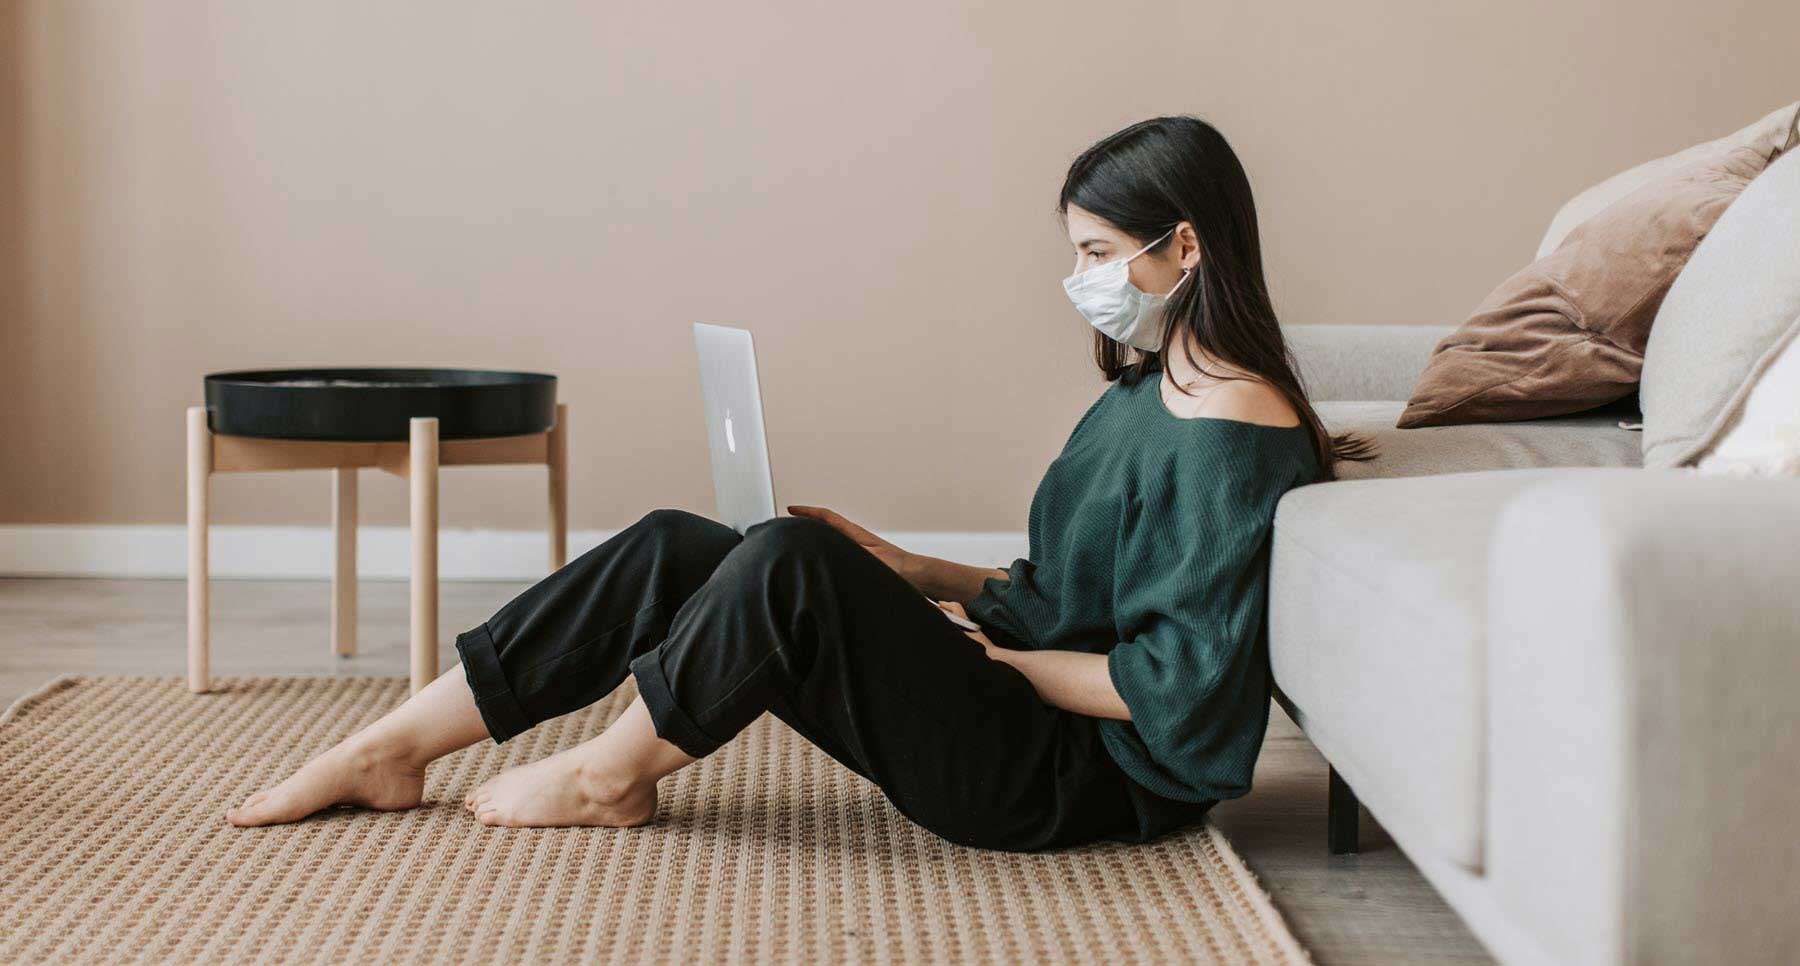 The-World-Is-On-Fire-the--insane-paradox-Millennial-Woman-wearing-a-mask-working-at-home-on-the-computer-dealing-with-pandemic-anxiety-TheHopeLine